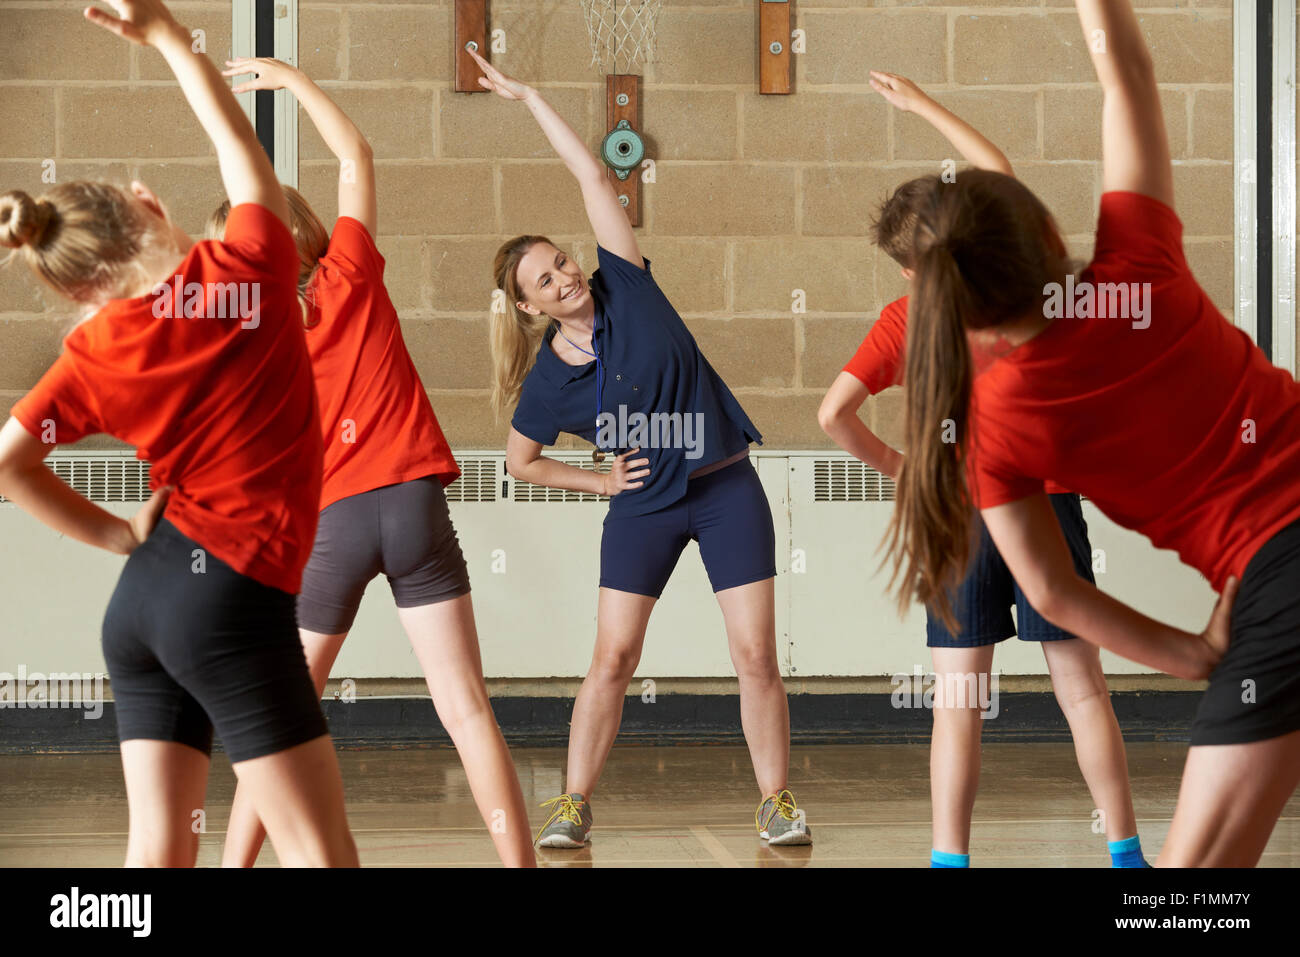 Teacher Taking Exercise Class In School Gym - Stock Image